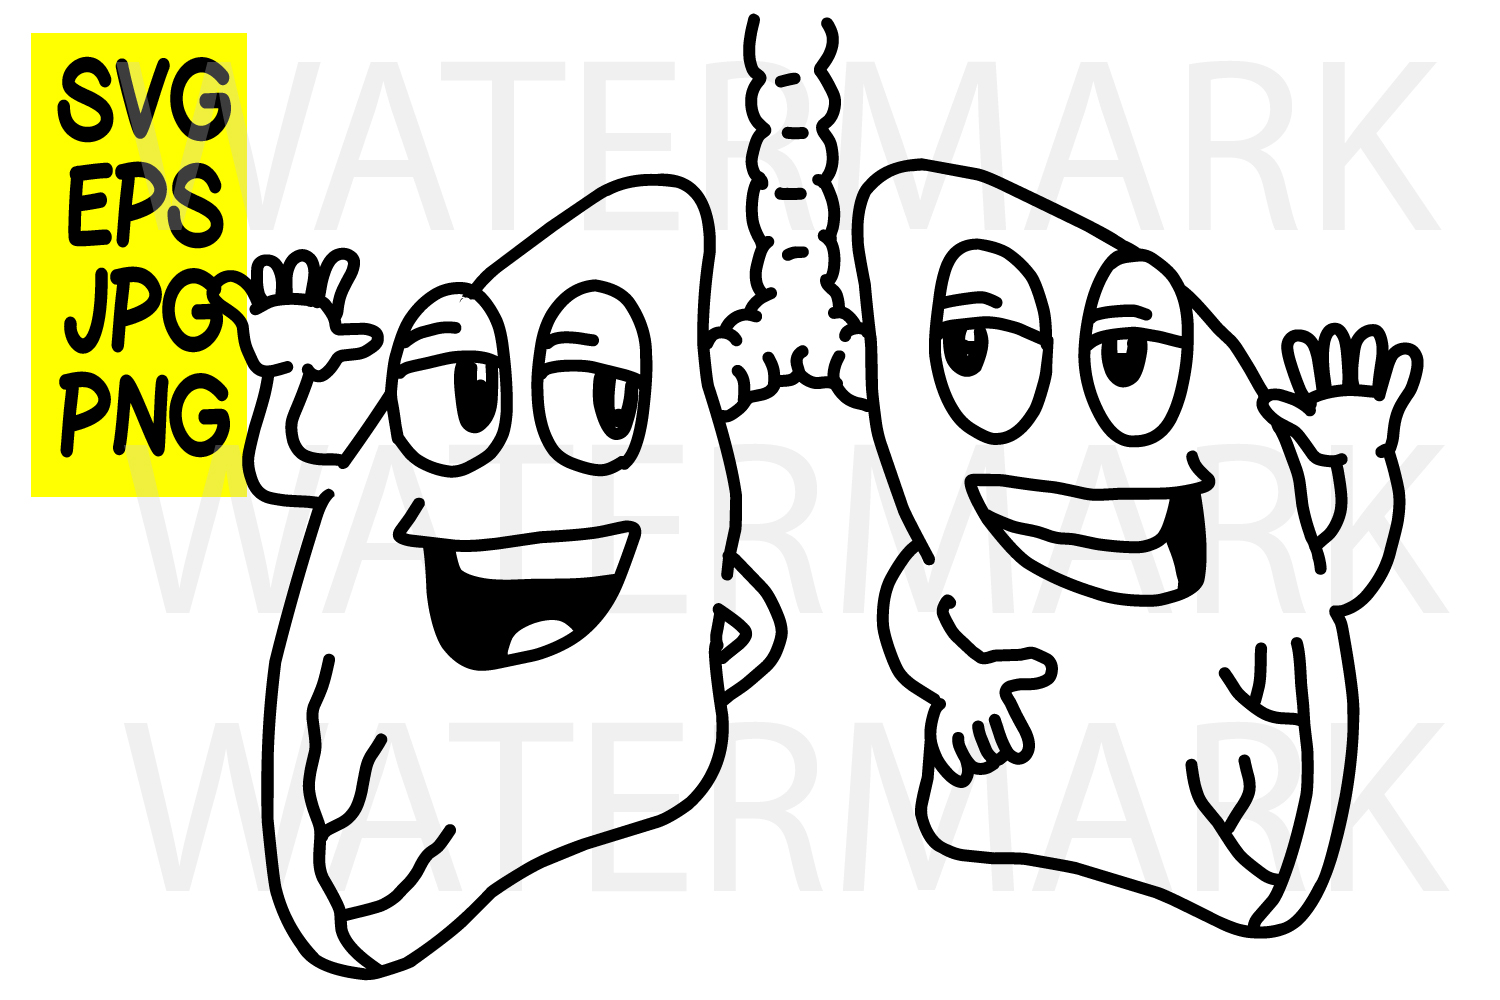 Smiling Lungs - SVG-EPS-JPG example image 1